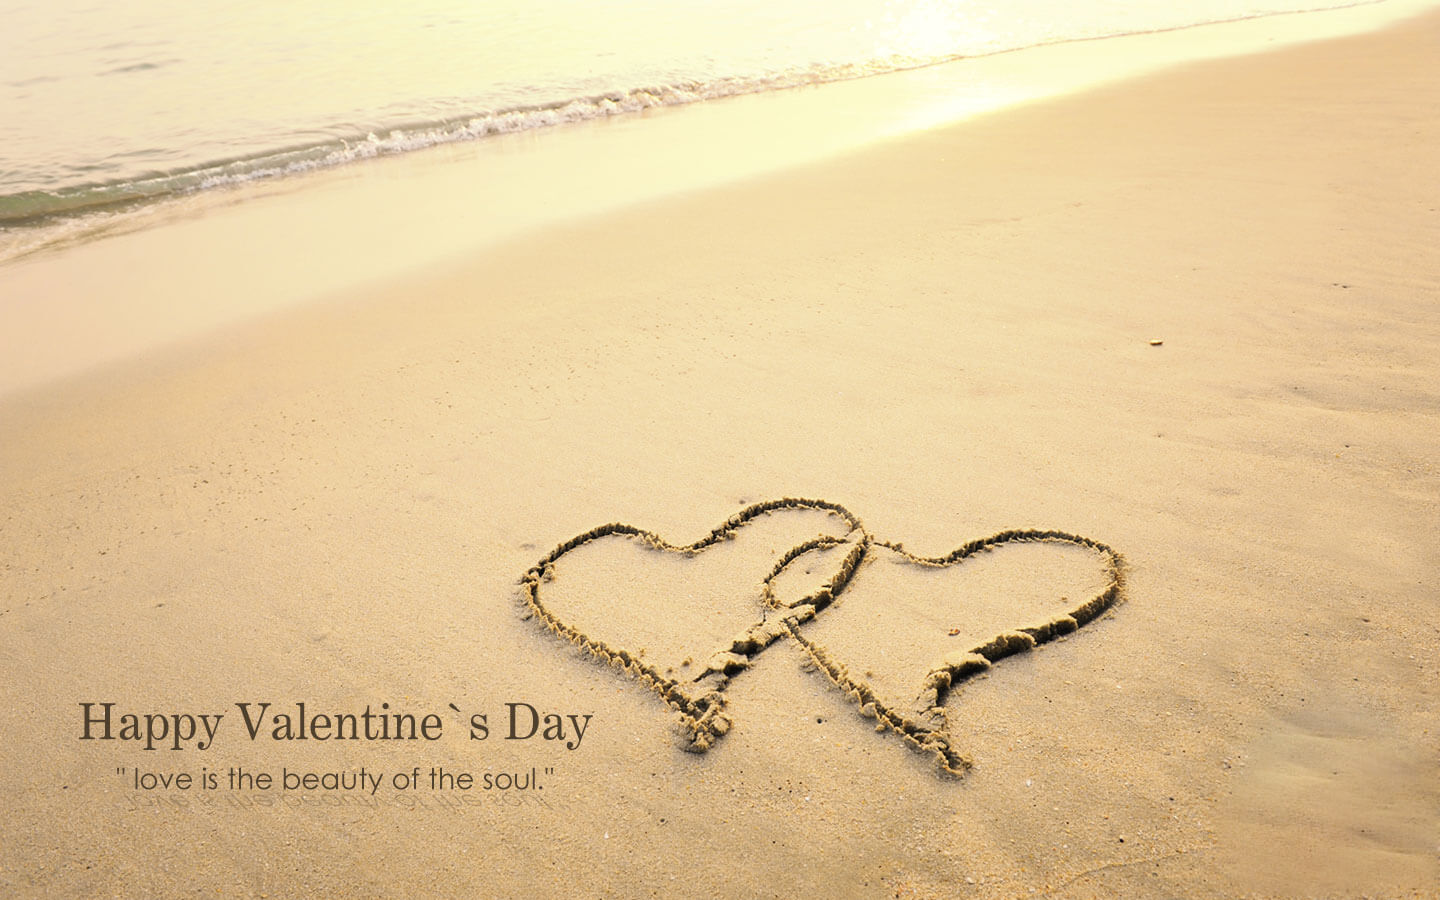 Happy Valentines Day 2019 Two Heart At Beach Wallpaper Image